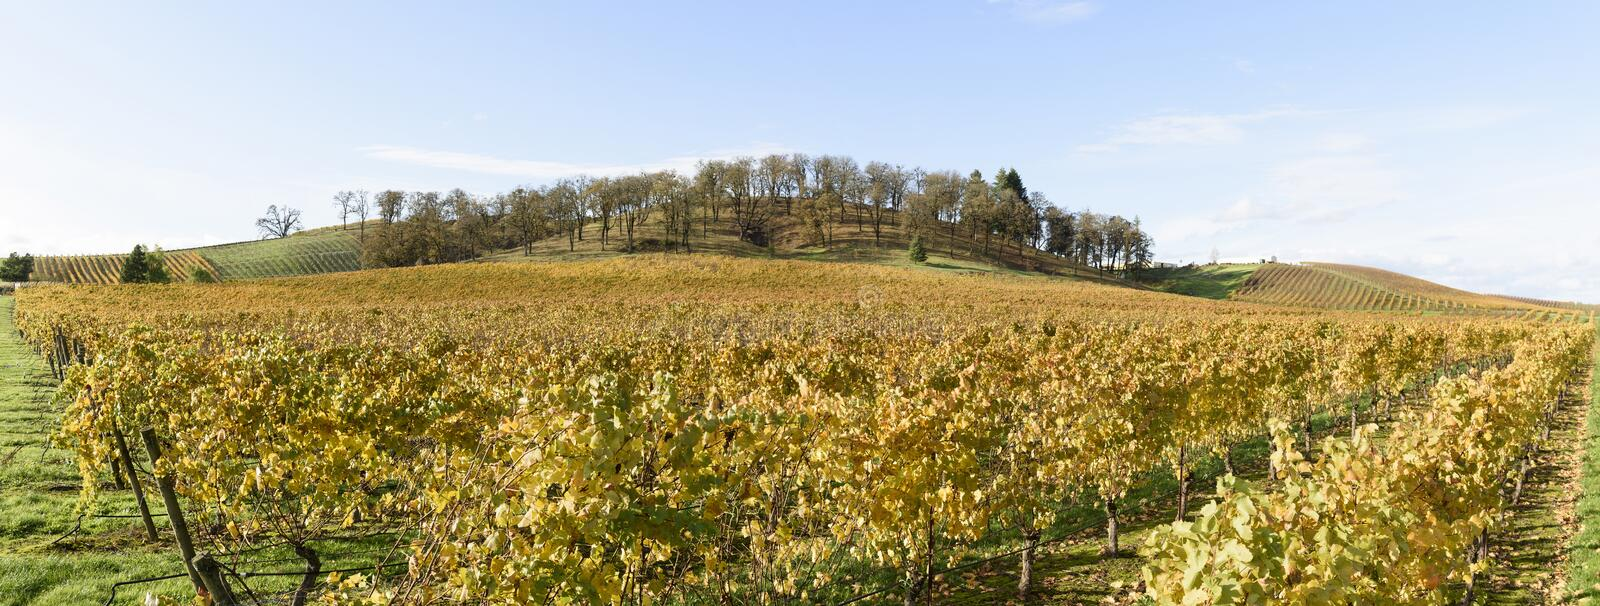 Fall Colors of Mid-Willamette Valley Vineyards in Western Oregon stock image